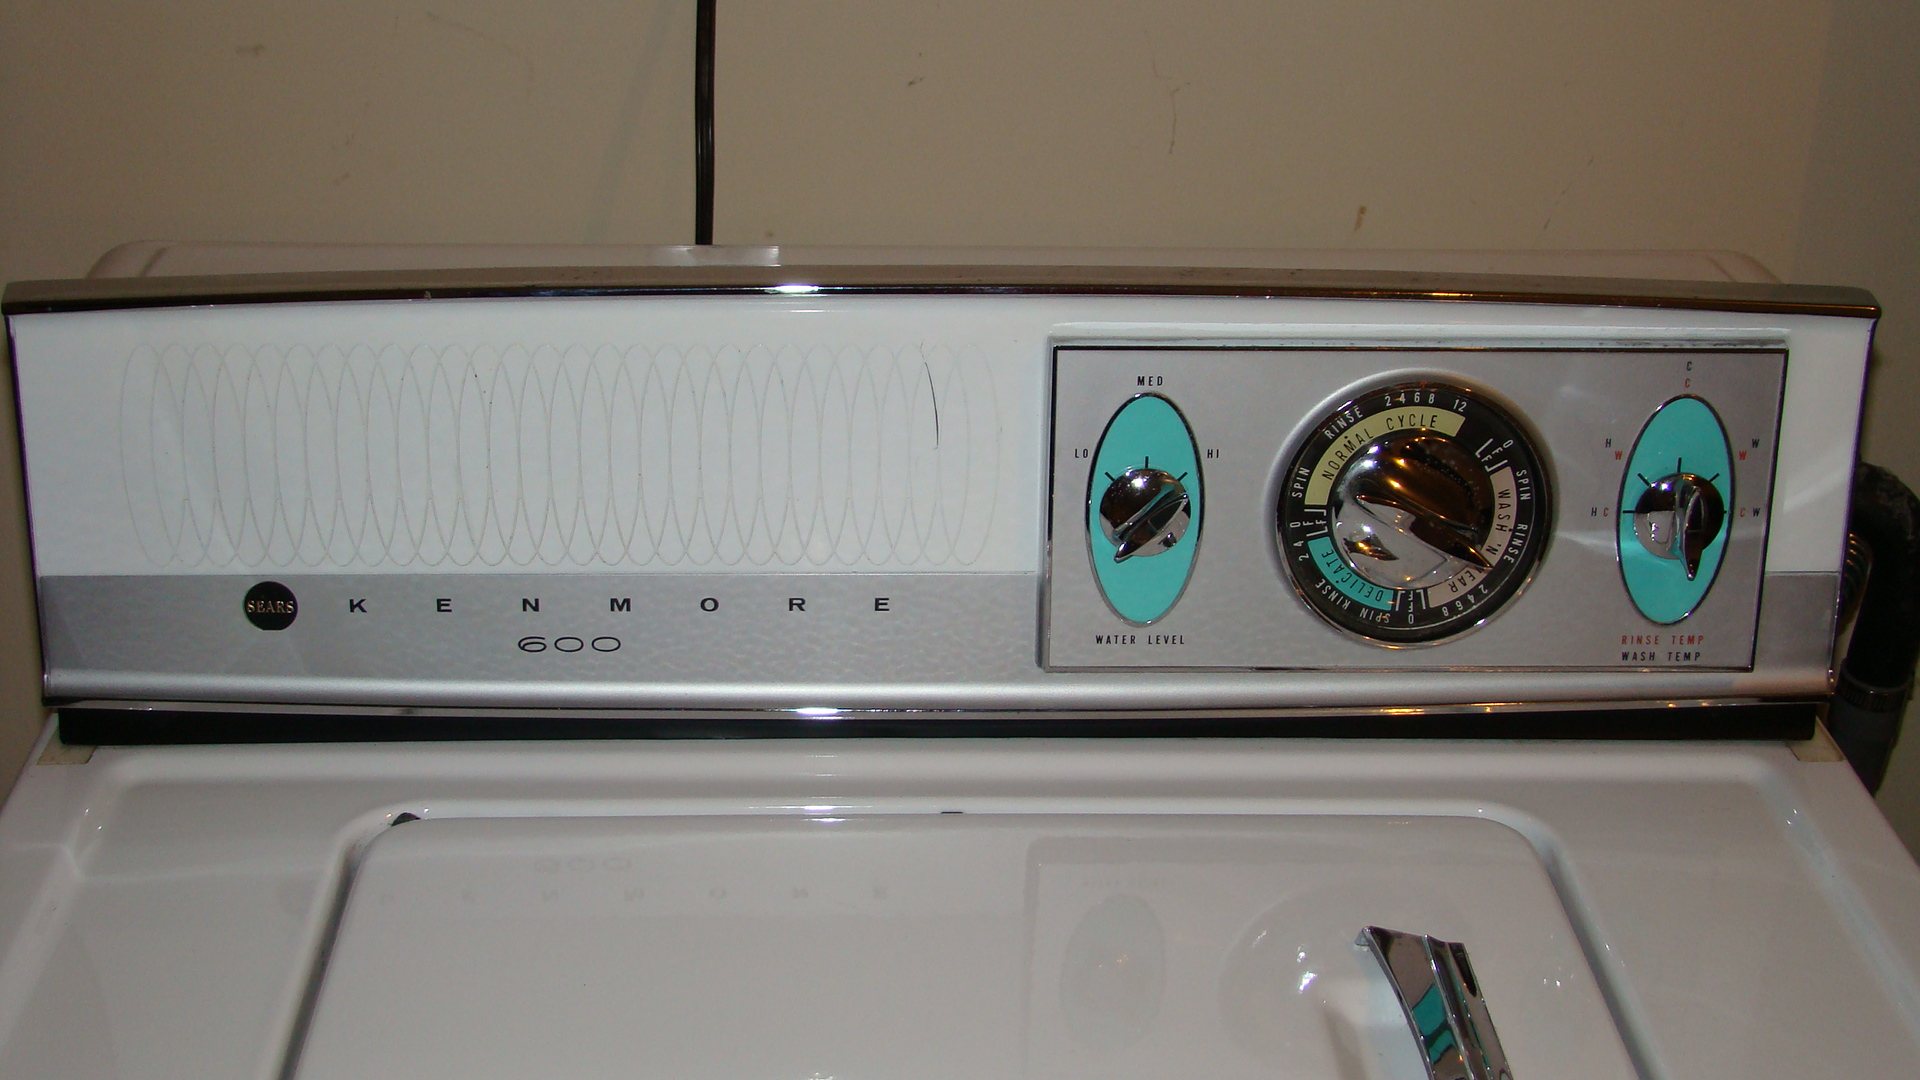 What is your dream vintage washer dryer set that you would love to